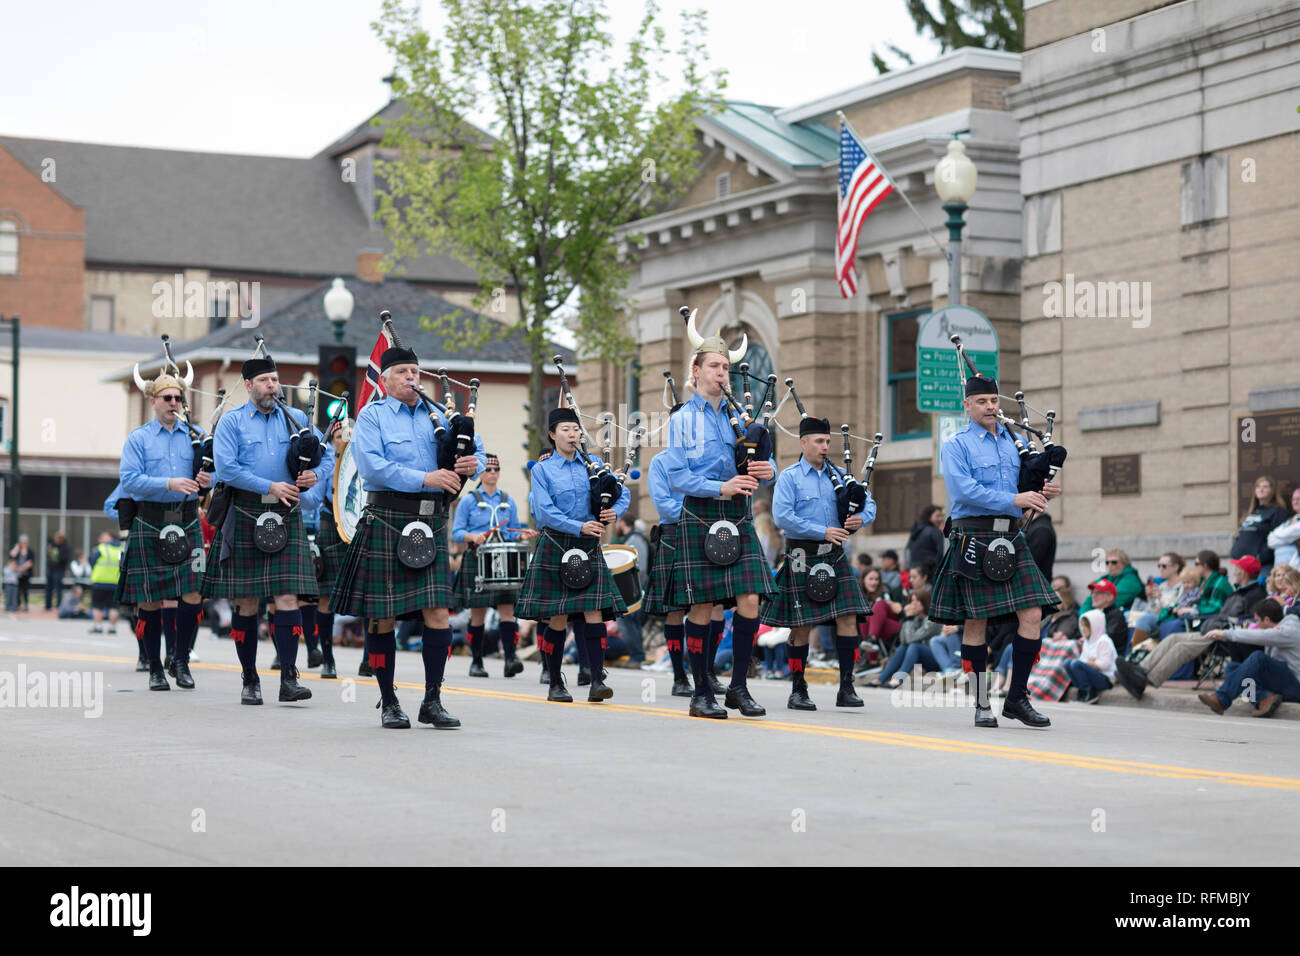 Stoughton, Wisconsin, USA - May 20, 2018: Annual Norwegian Parade, Men and woman playing bagpipes, wearing skirts and Viking helmets - Stock Image